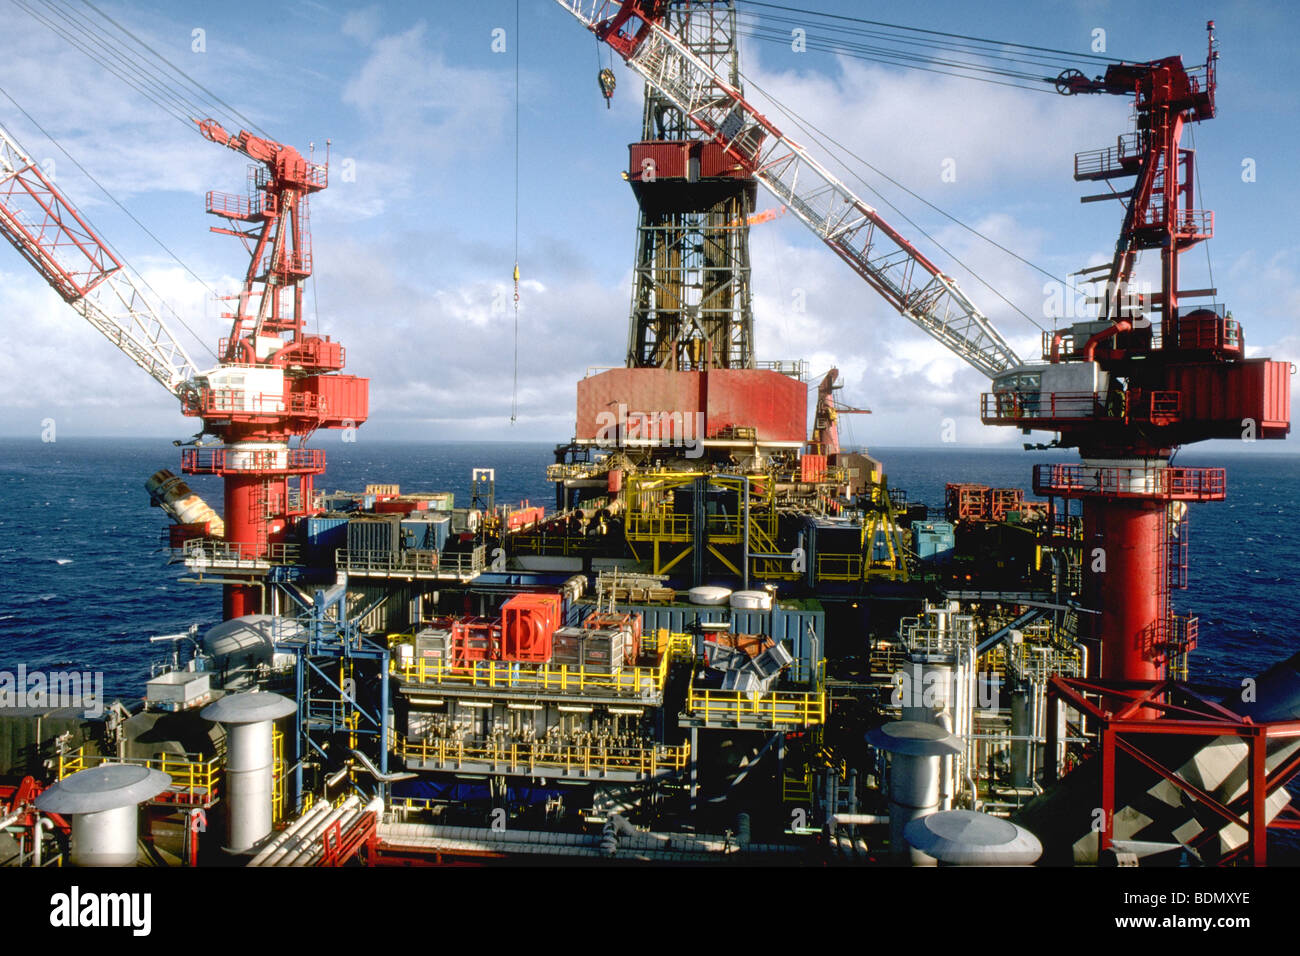 Offshore oil platform in the North Sea, Norway - Stock Image